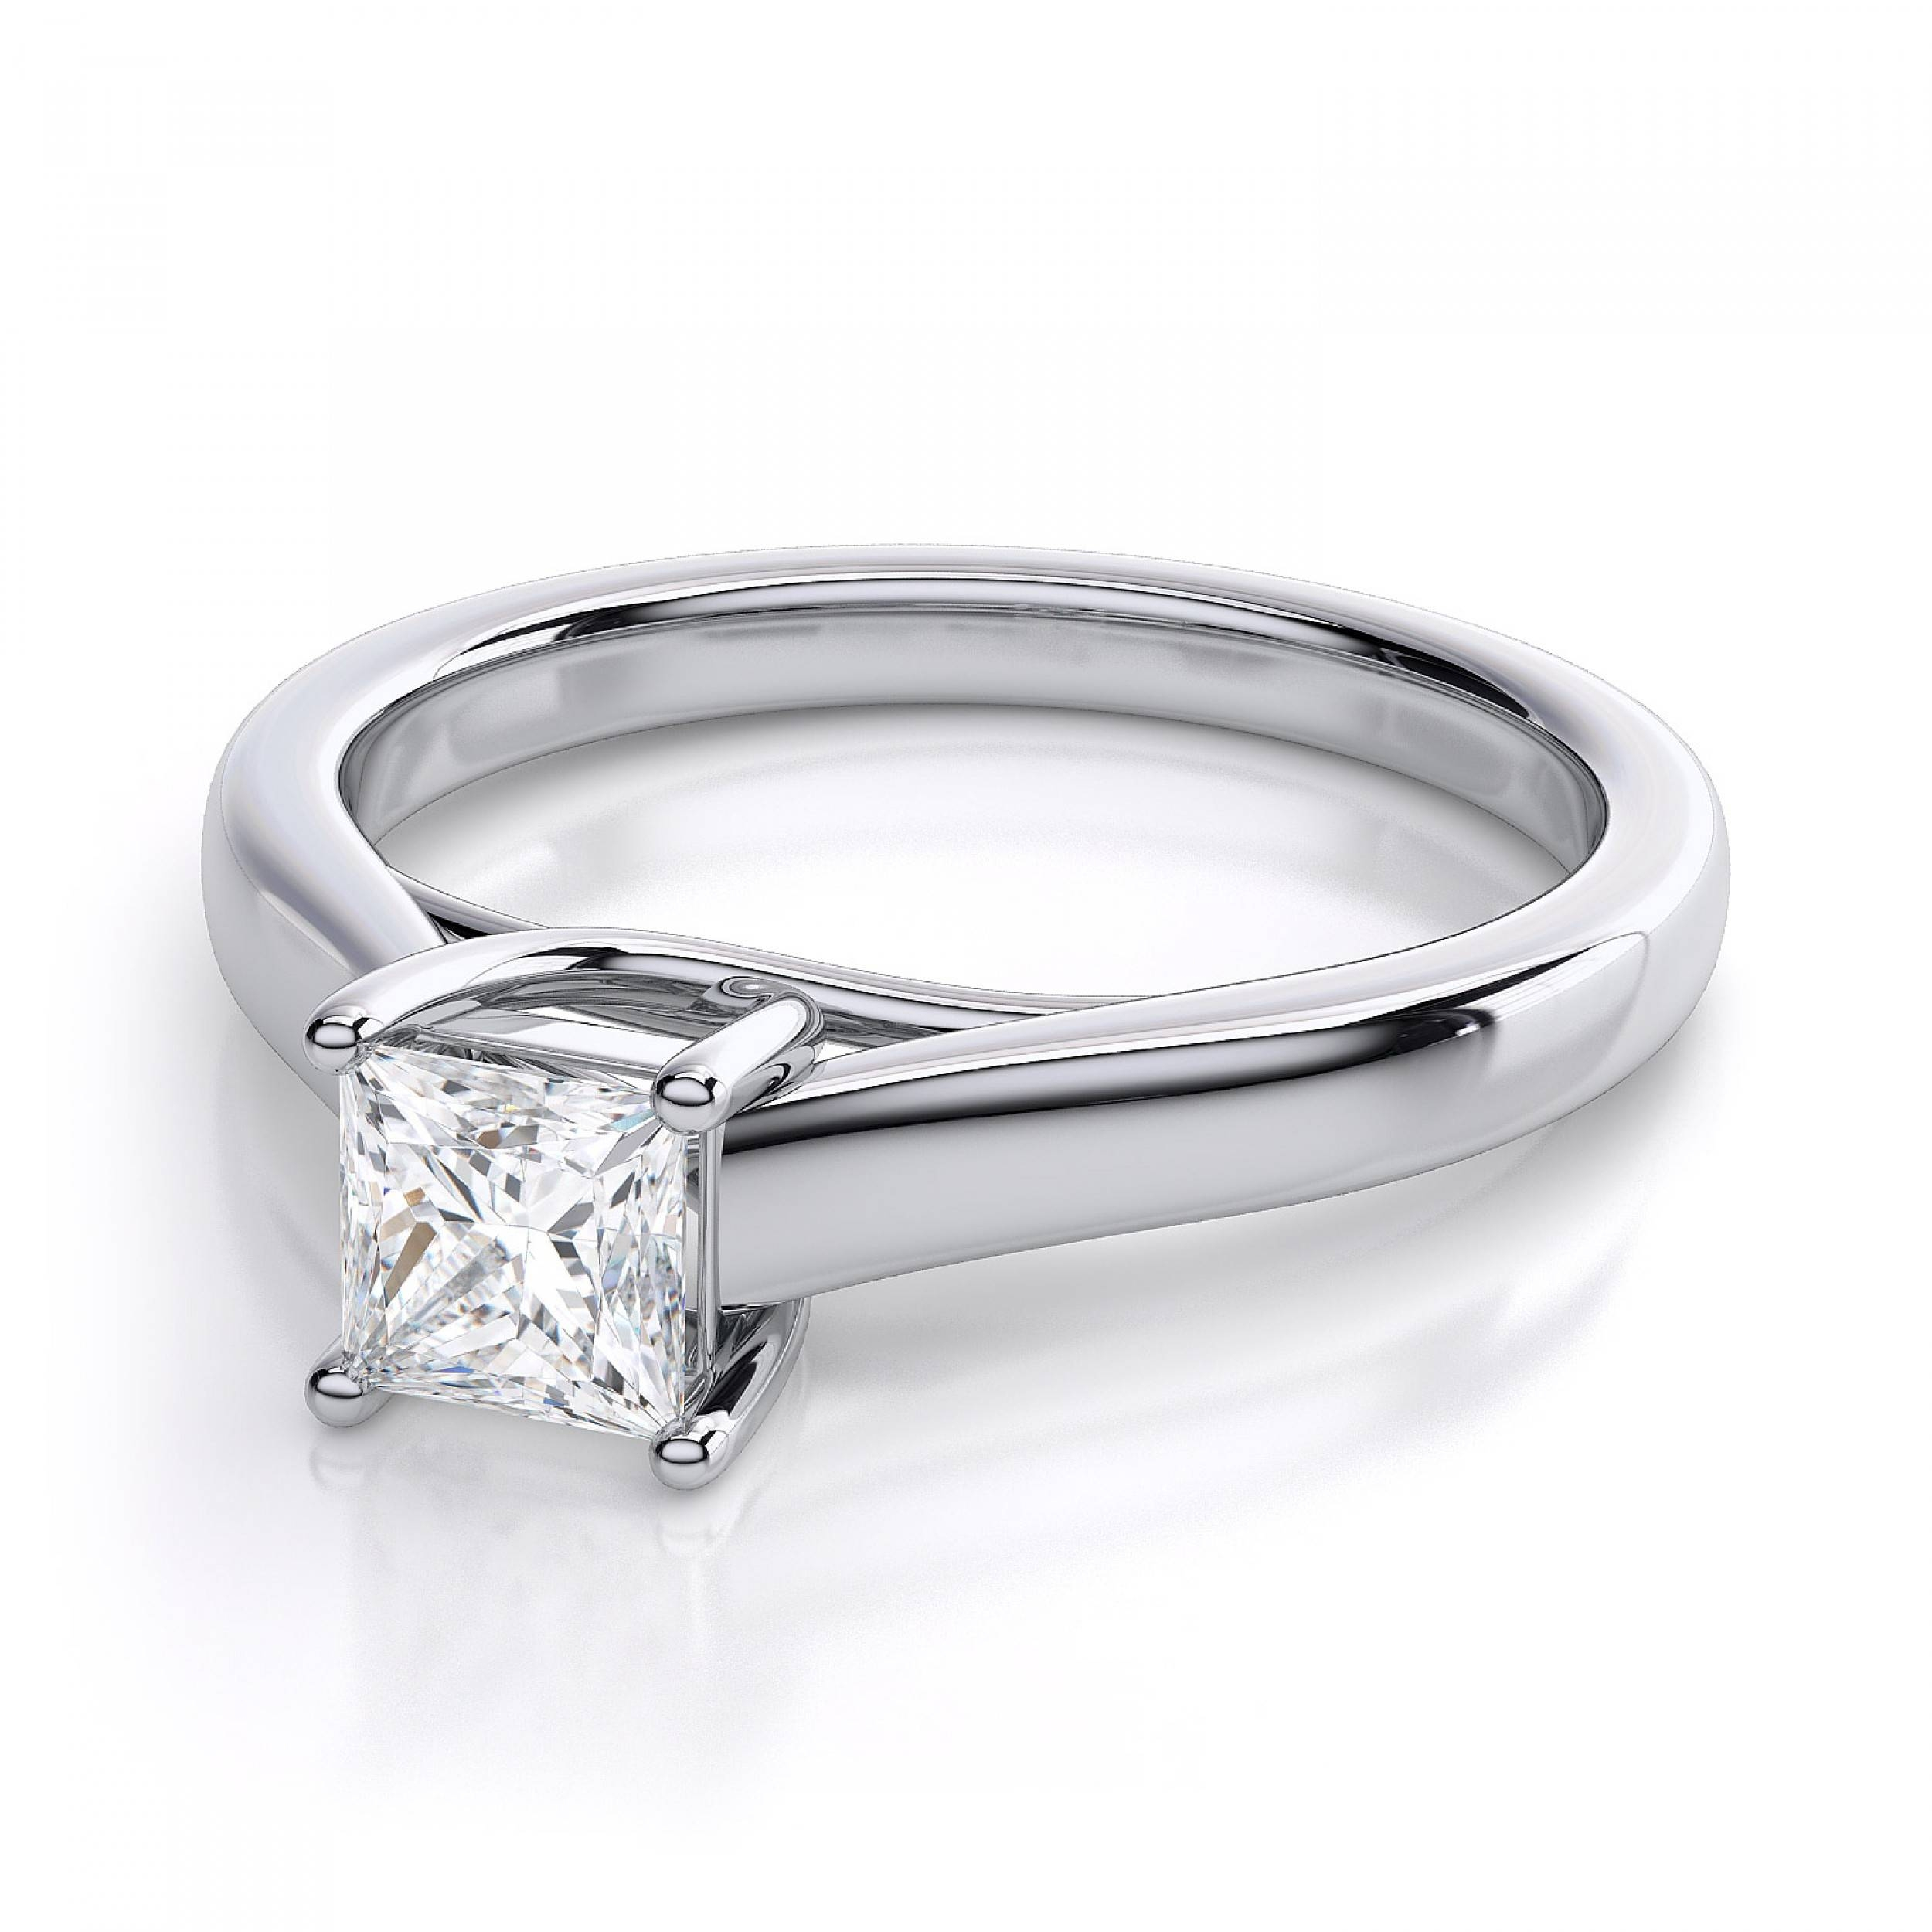 Princess Cut Trellis Solitaire Diamond Engagement Ring In Platinum Intended For Princess Cut Diamond Engagement Rings (View 13 of 15)